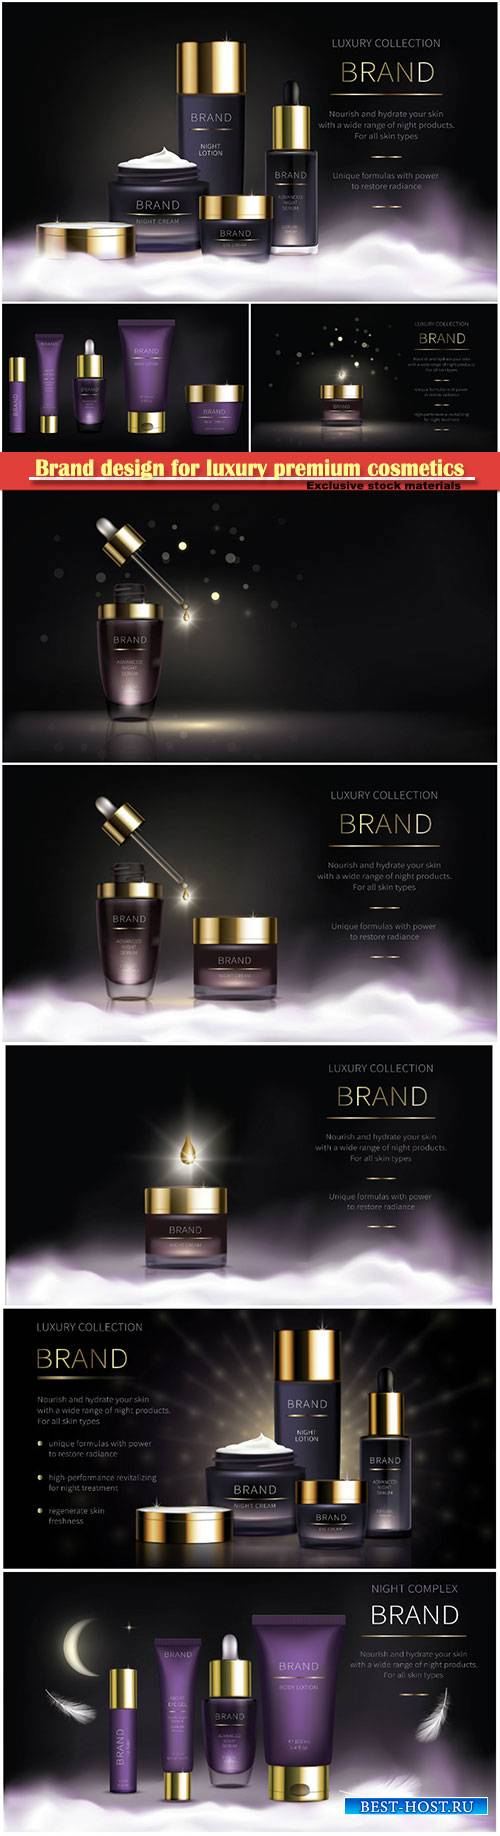 Brand design for luxury premium cosmetics, series for face skin care, reali ...